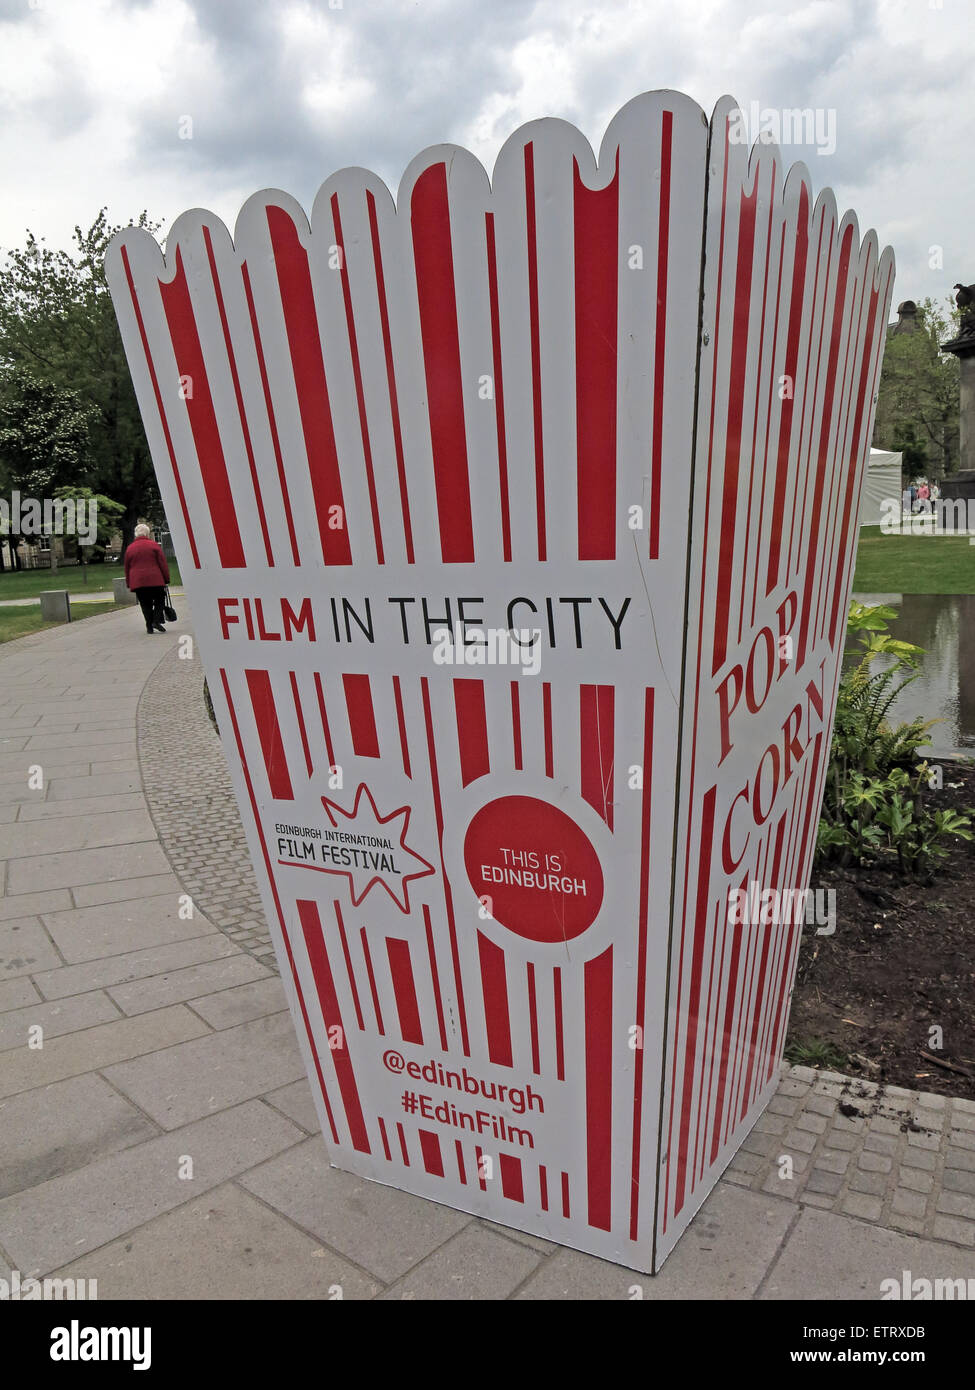 Film in The City, Grassmarket and St Andrew Square screenings, Edinburgh, Scotland, UK - Stock Image